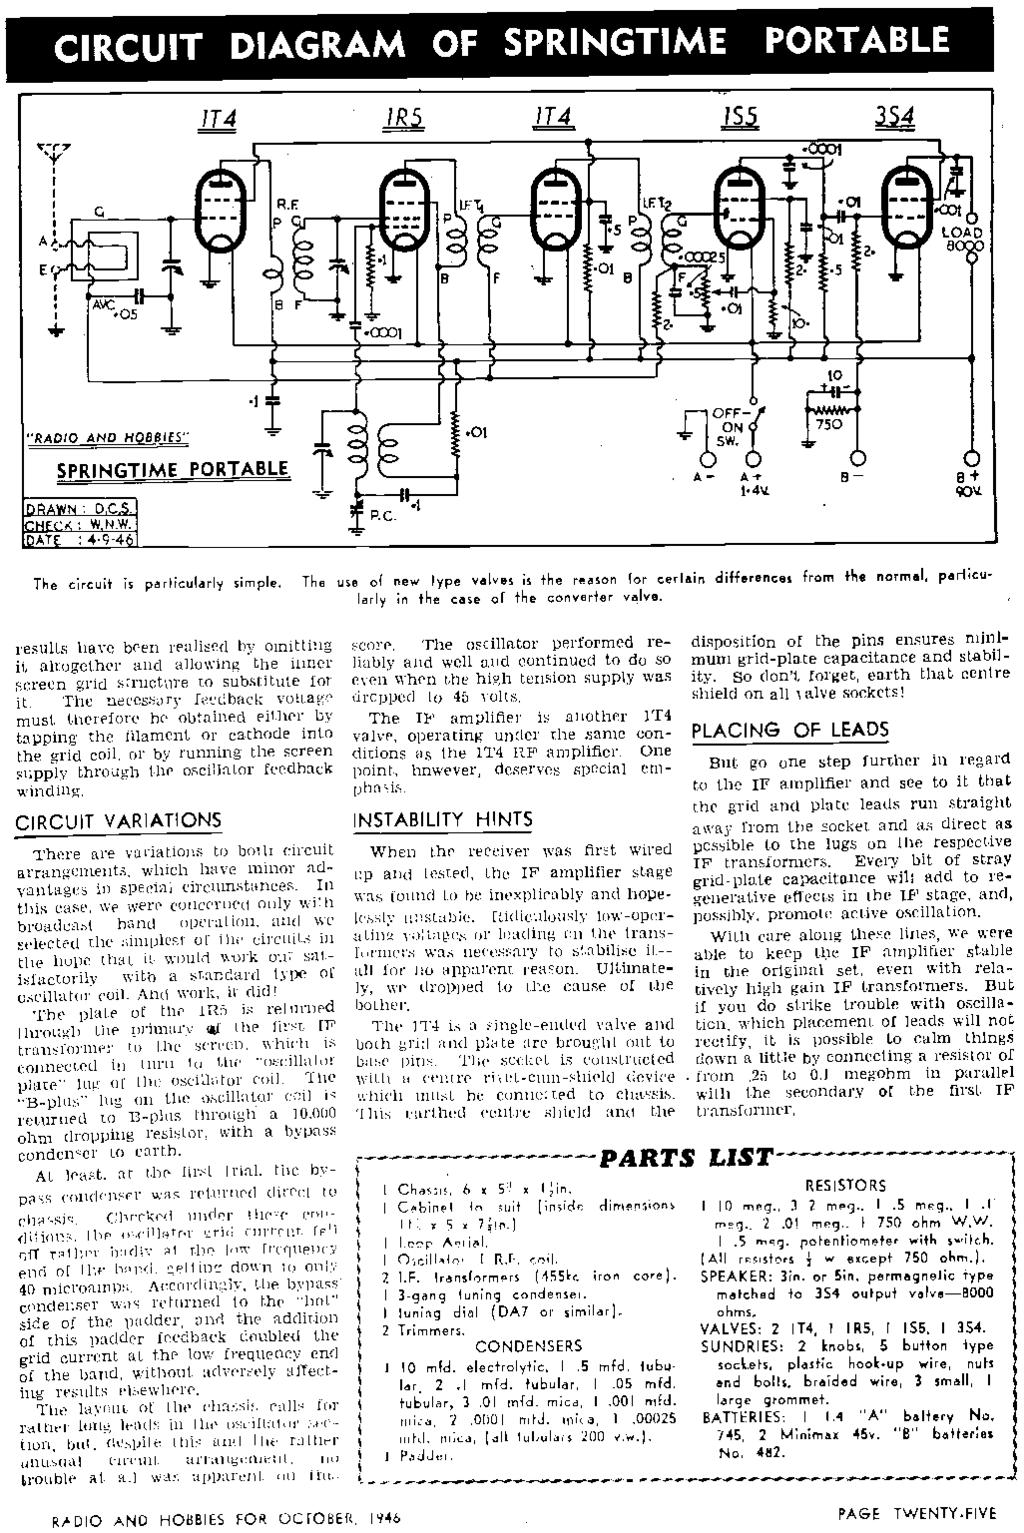 Hobb A Crystal Set For Beginners Radio Rocket Era Story On Pogo 3 Meyer Plow Wiring Diagram Rc 91b Lw I05 I Ii 14 Circuit Of Springtime Portable 174 Las